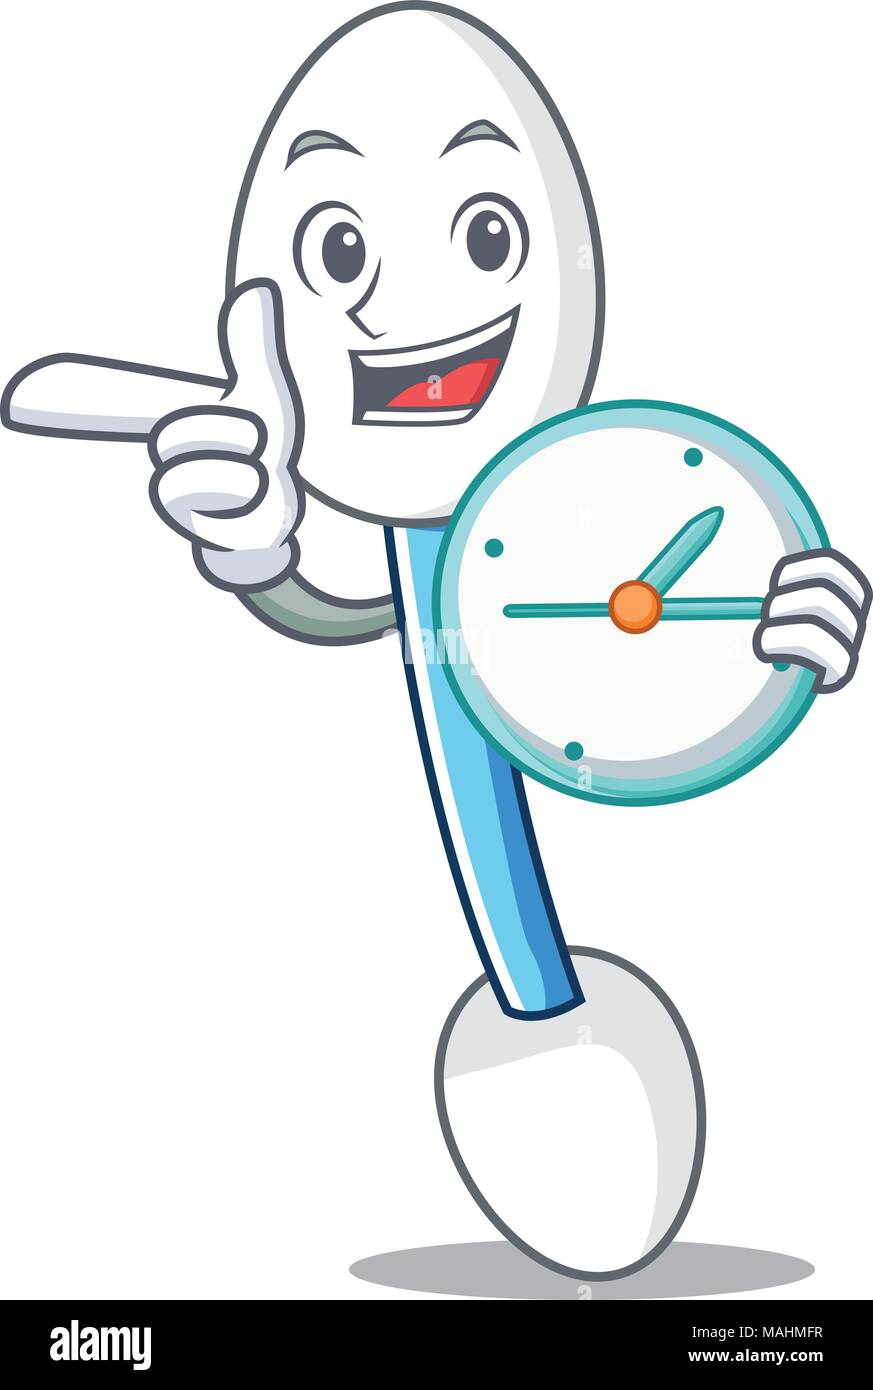 Clock cotton swab character cartoon - Stock Vector